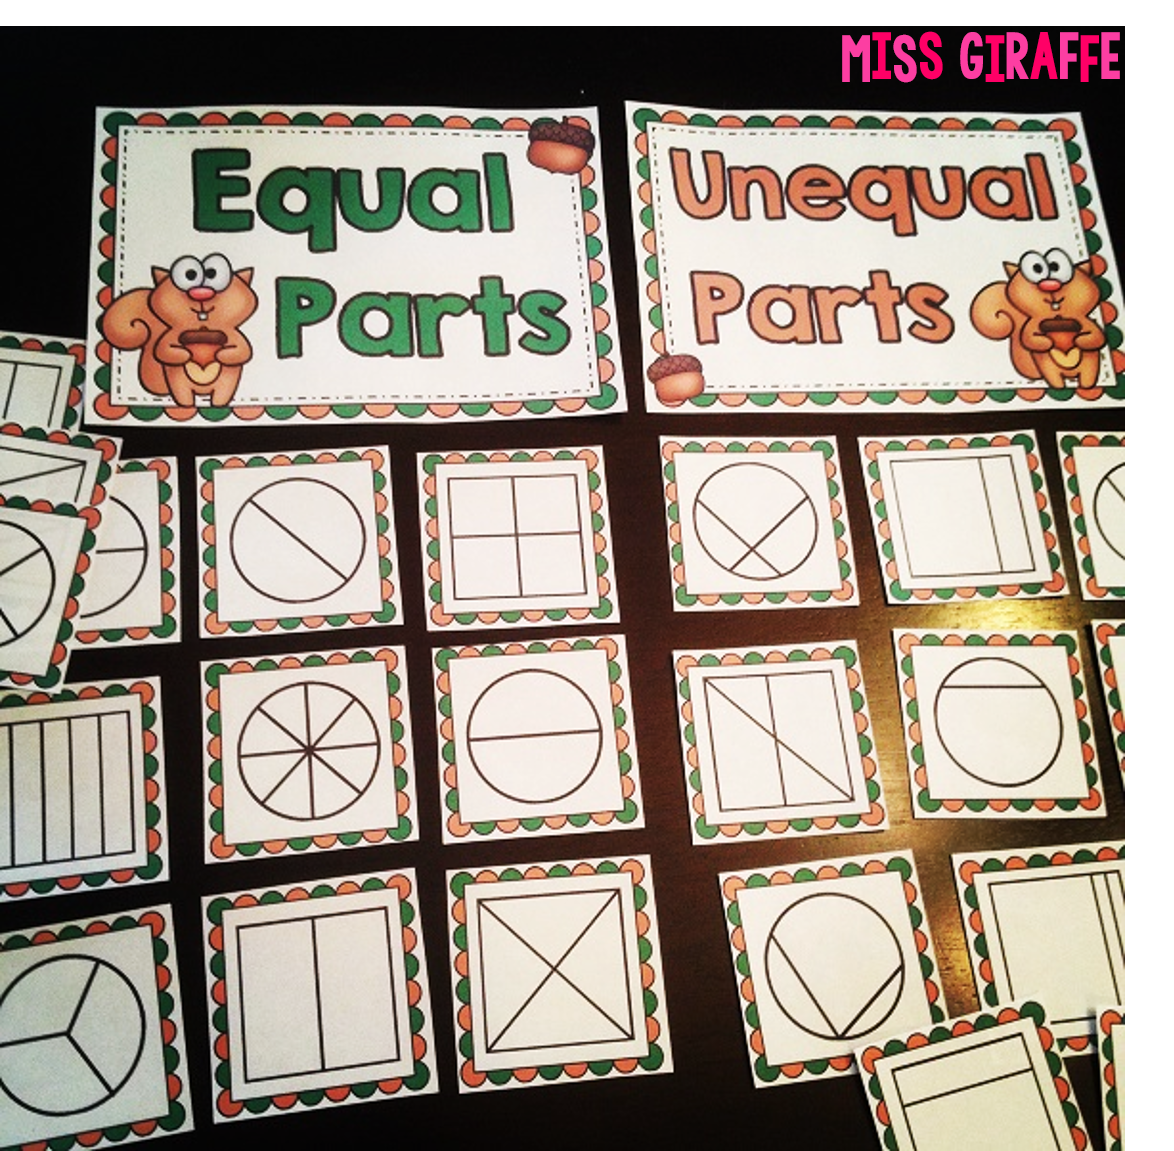 medium resolution of Miss Giraffe's Class: Fractions in First Grade